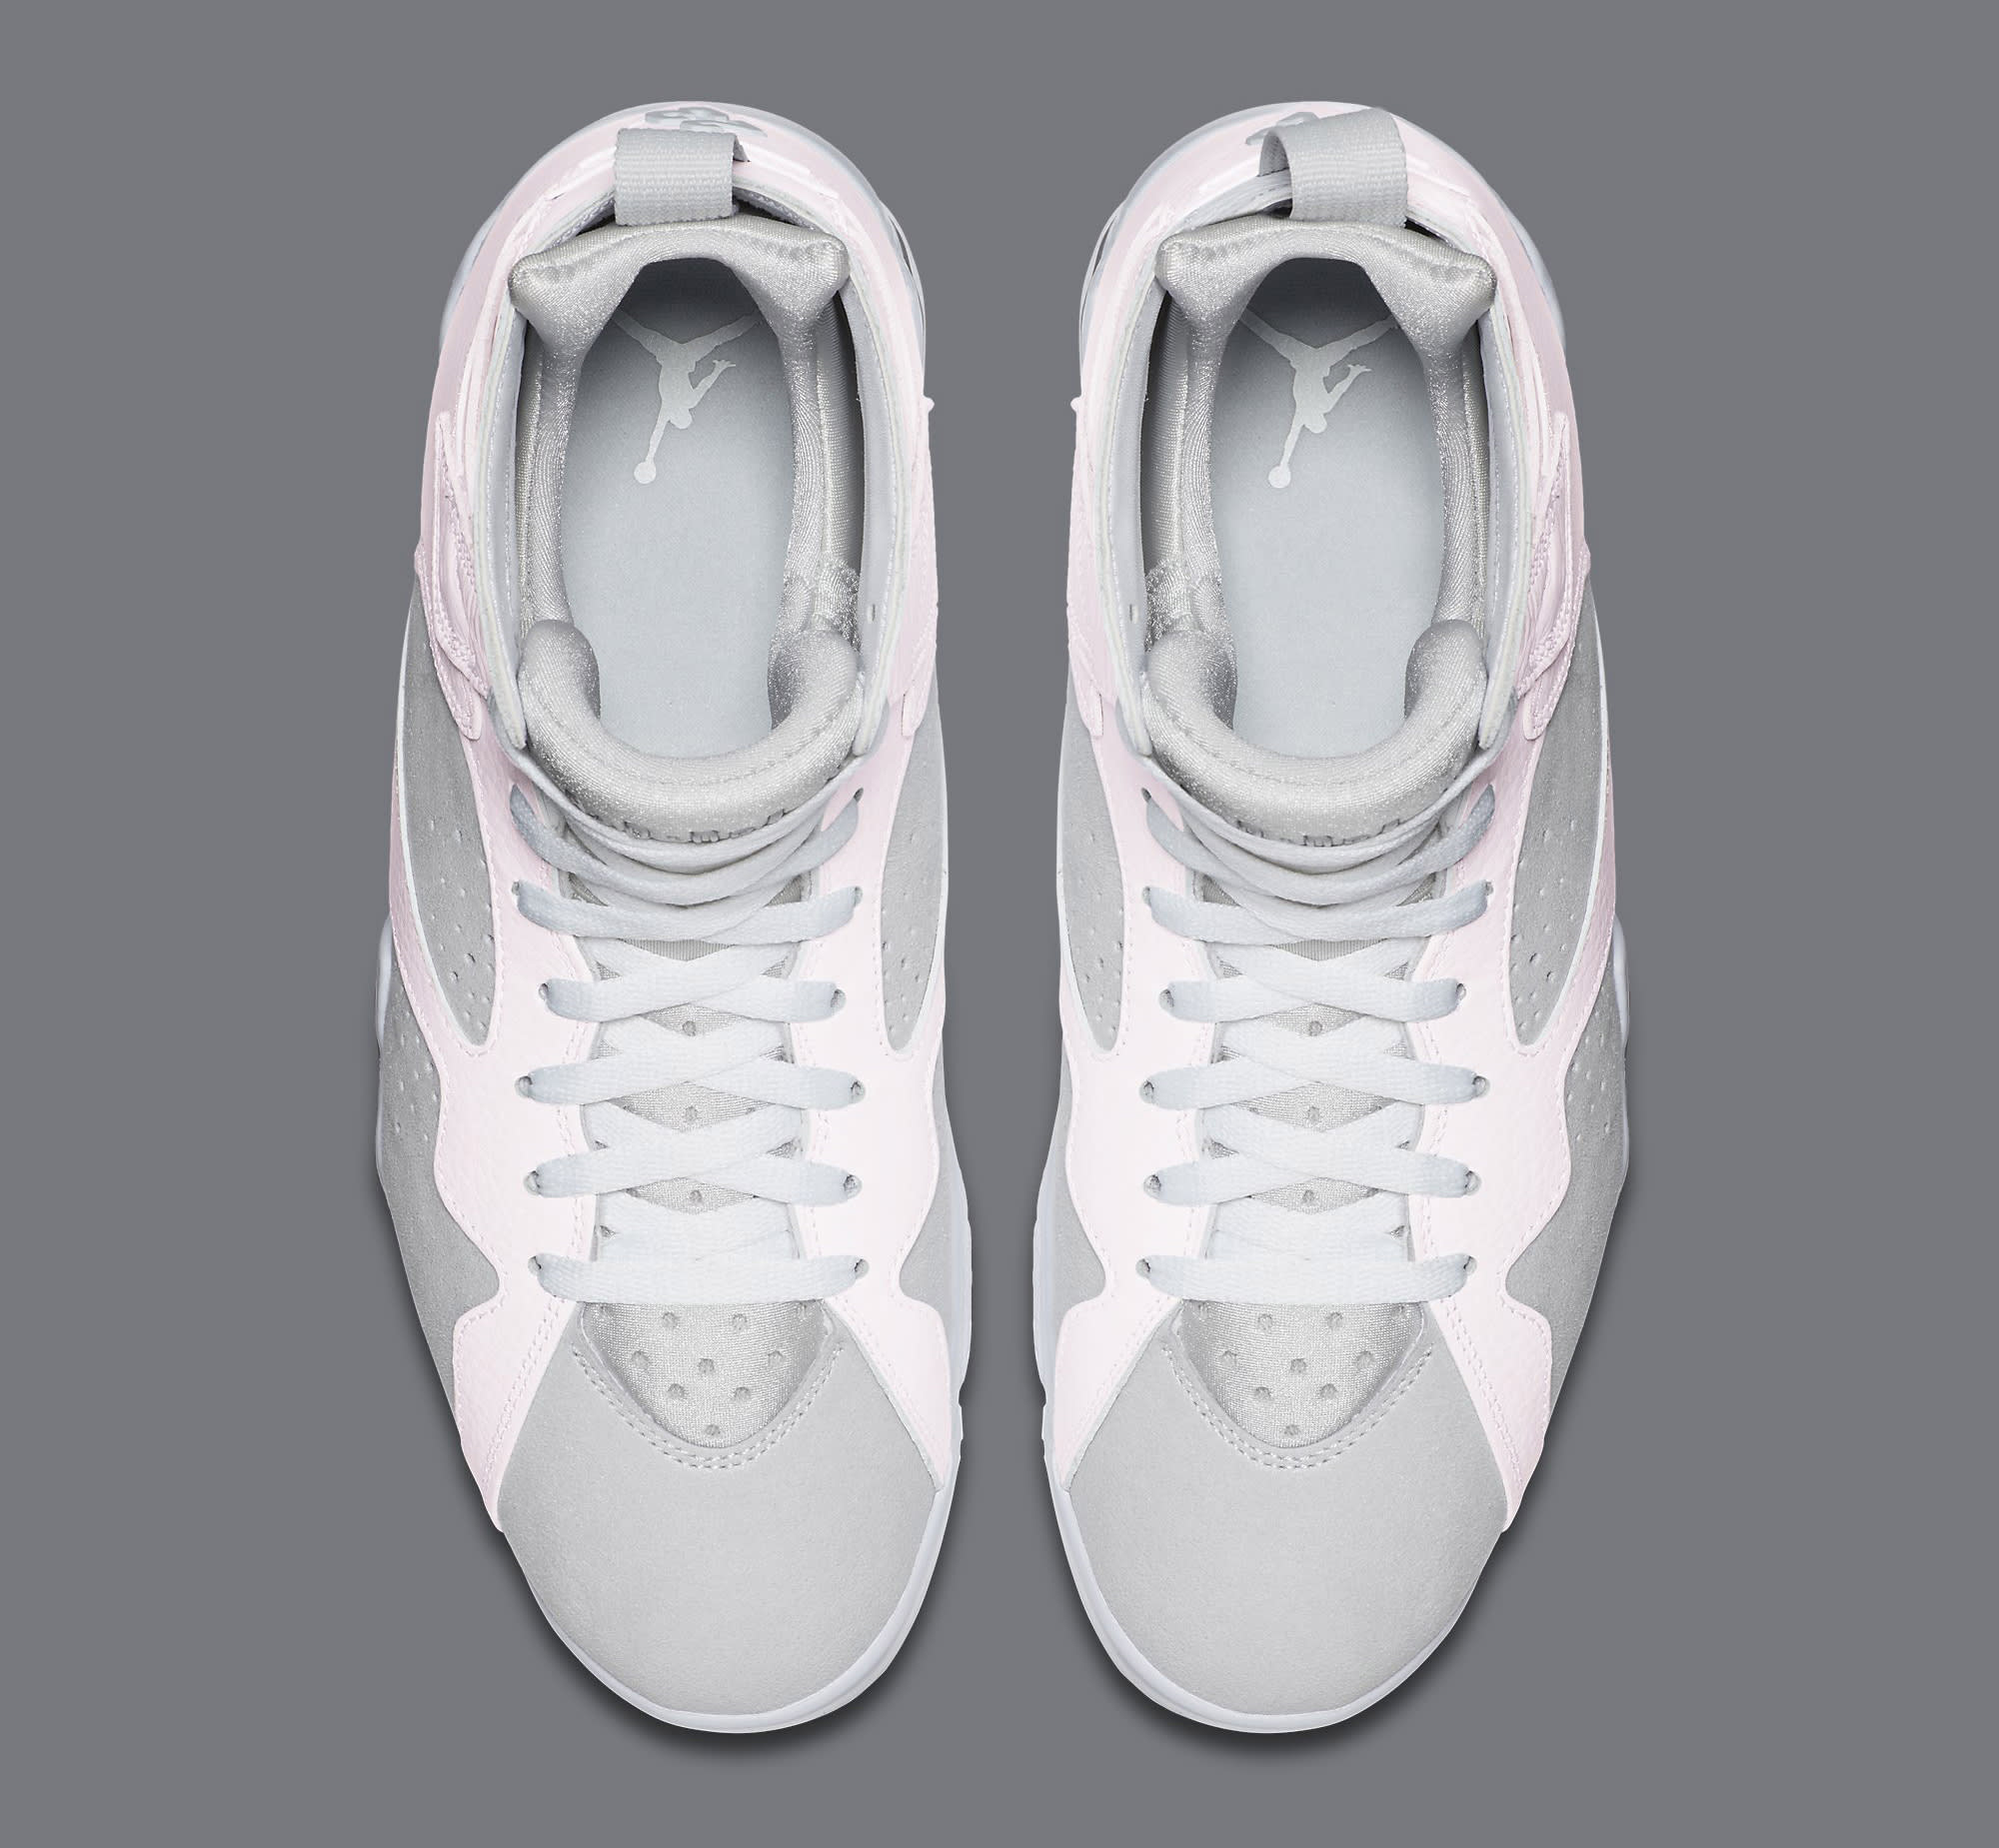 White Air Jordan 7 304775-120 Top